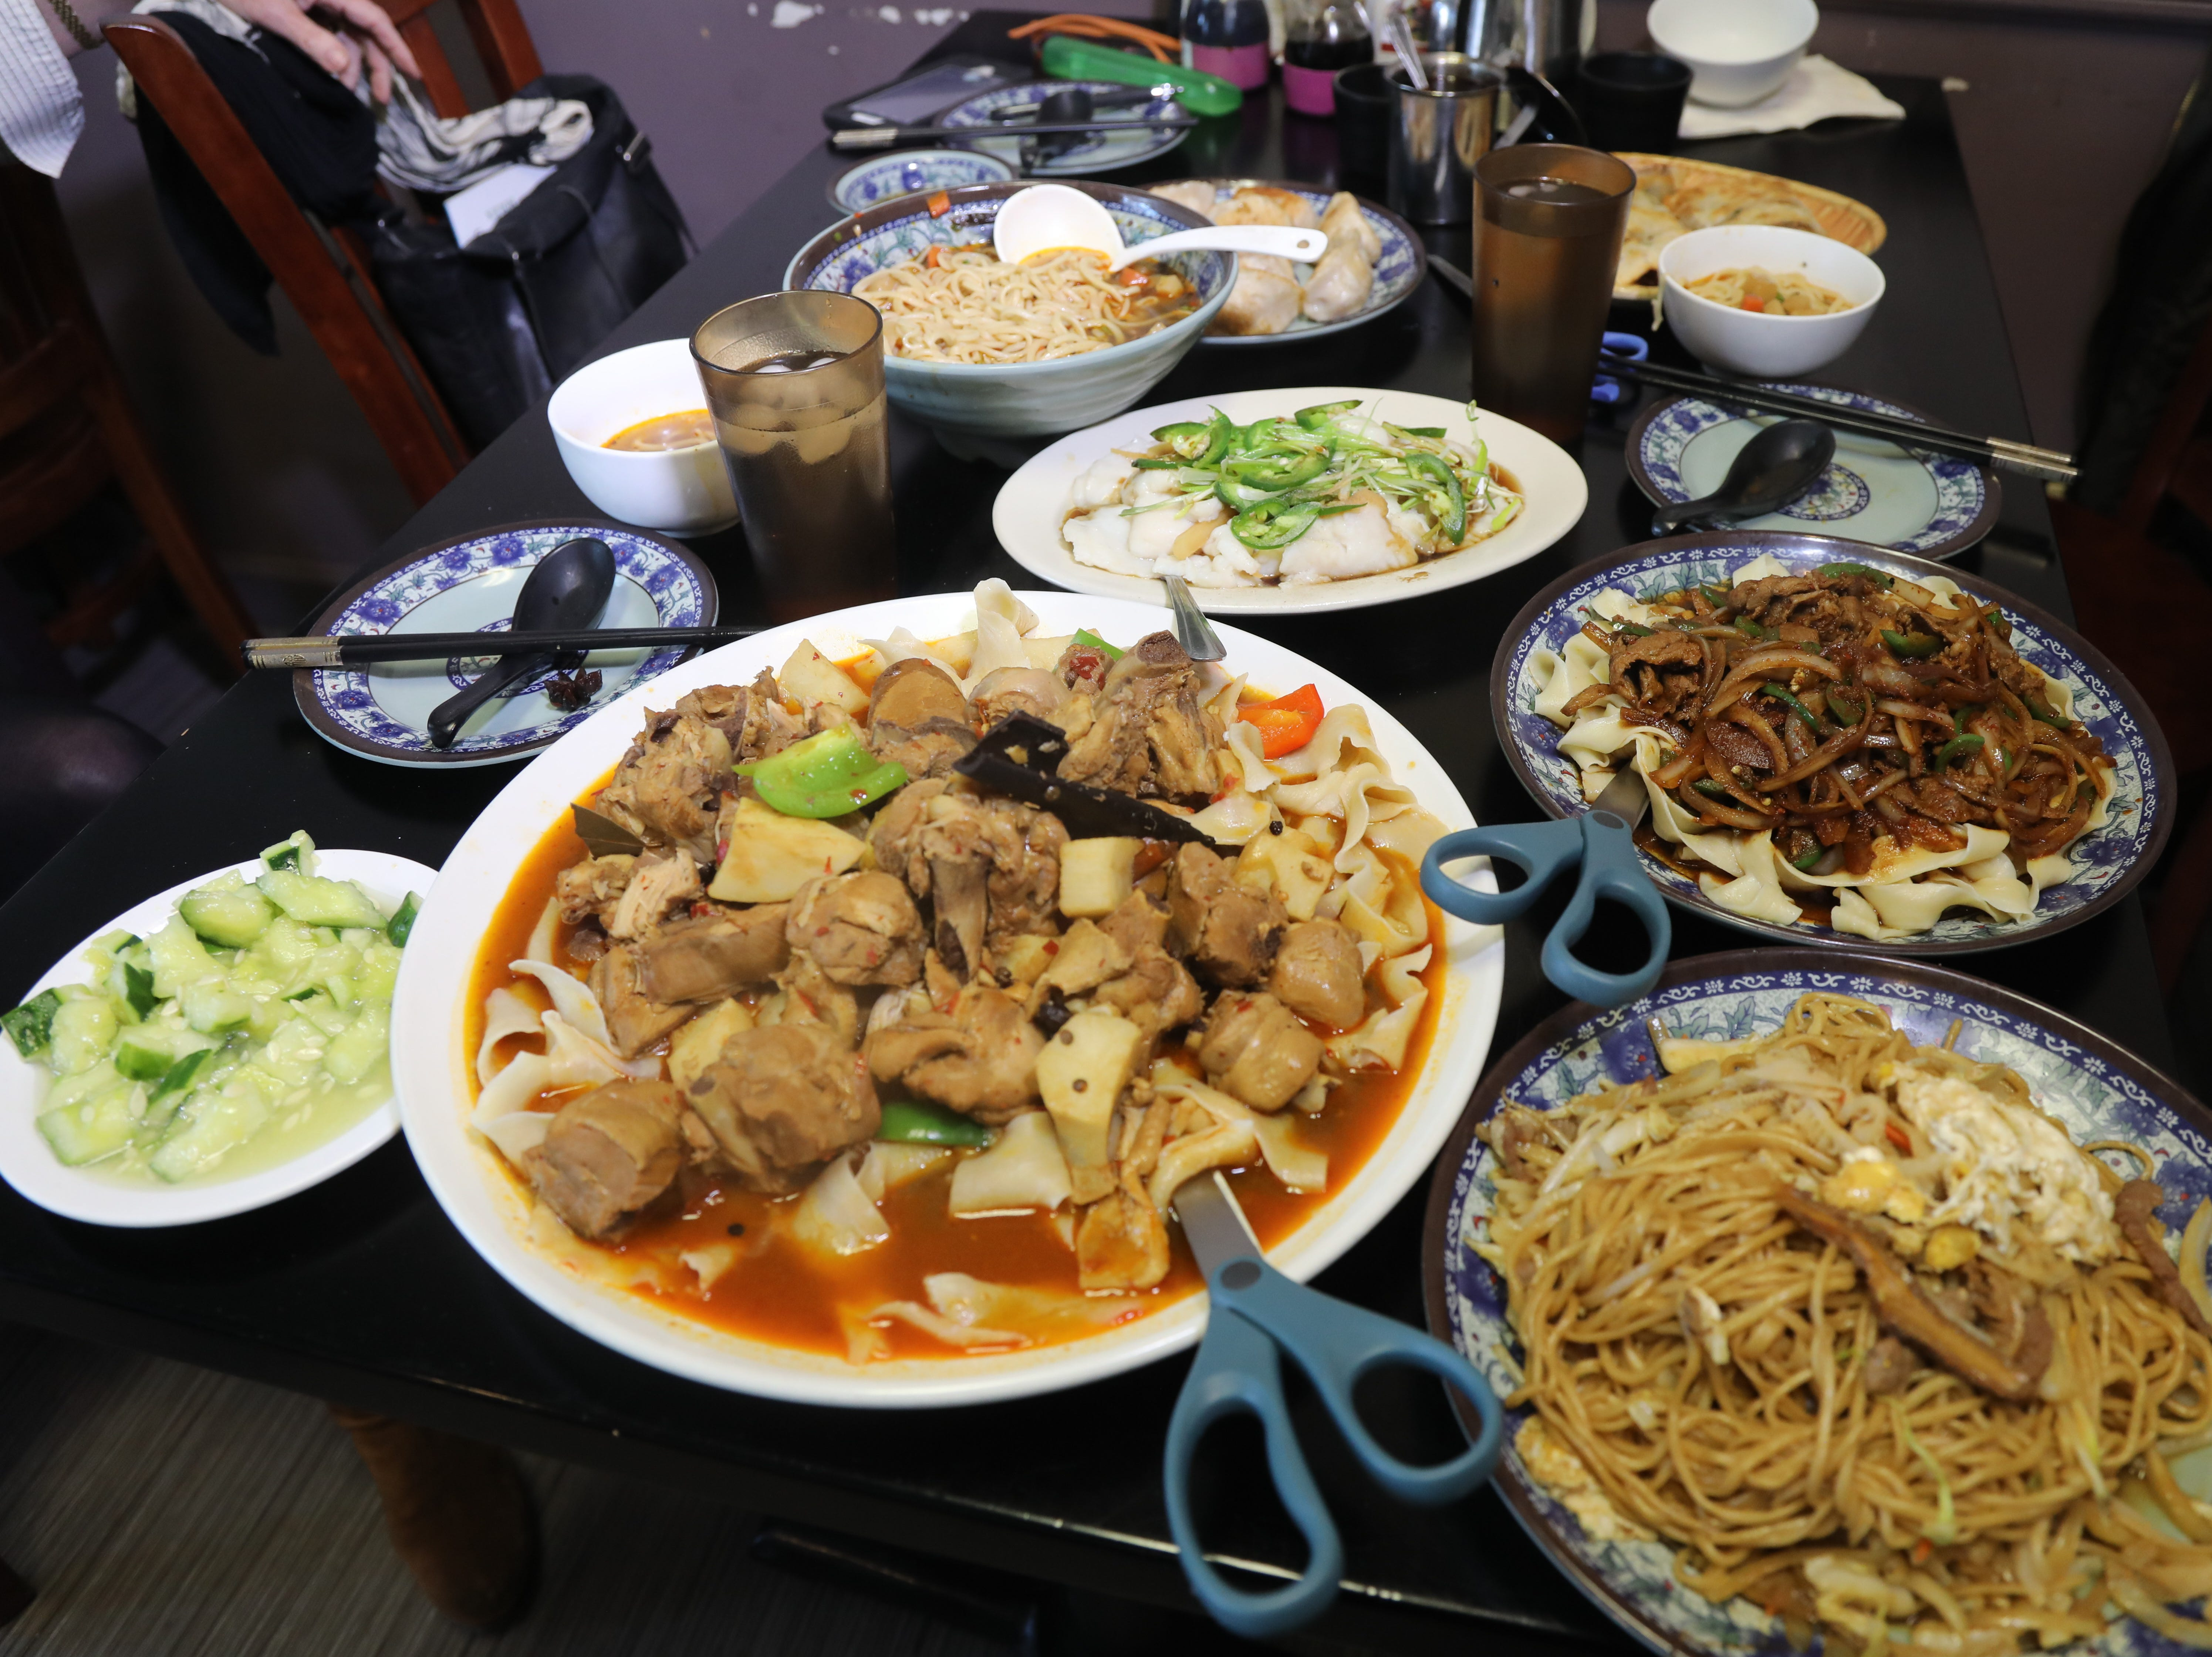 A selection of dishes from Shan Shan Noodles.